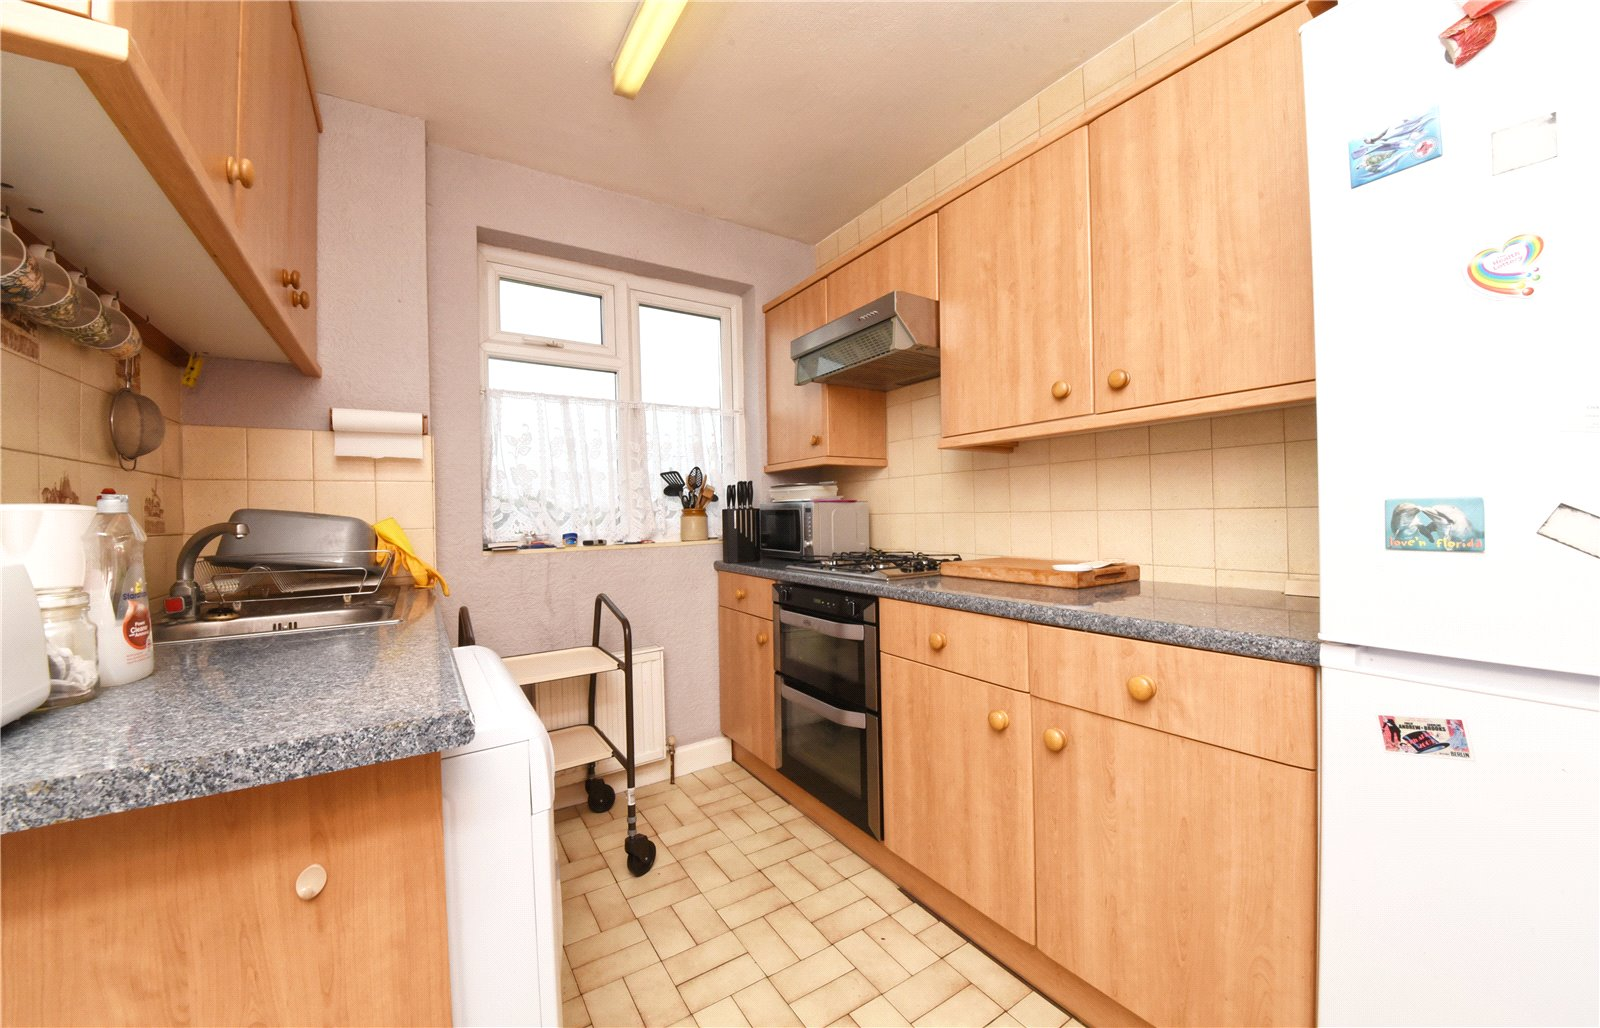 3 bed house for sale in Whetstone, N20 0DG 2